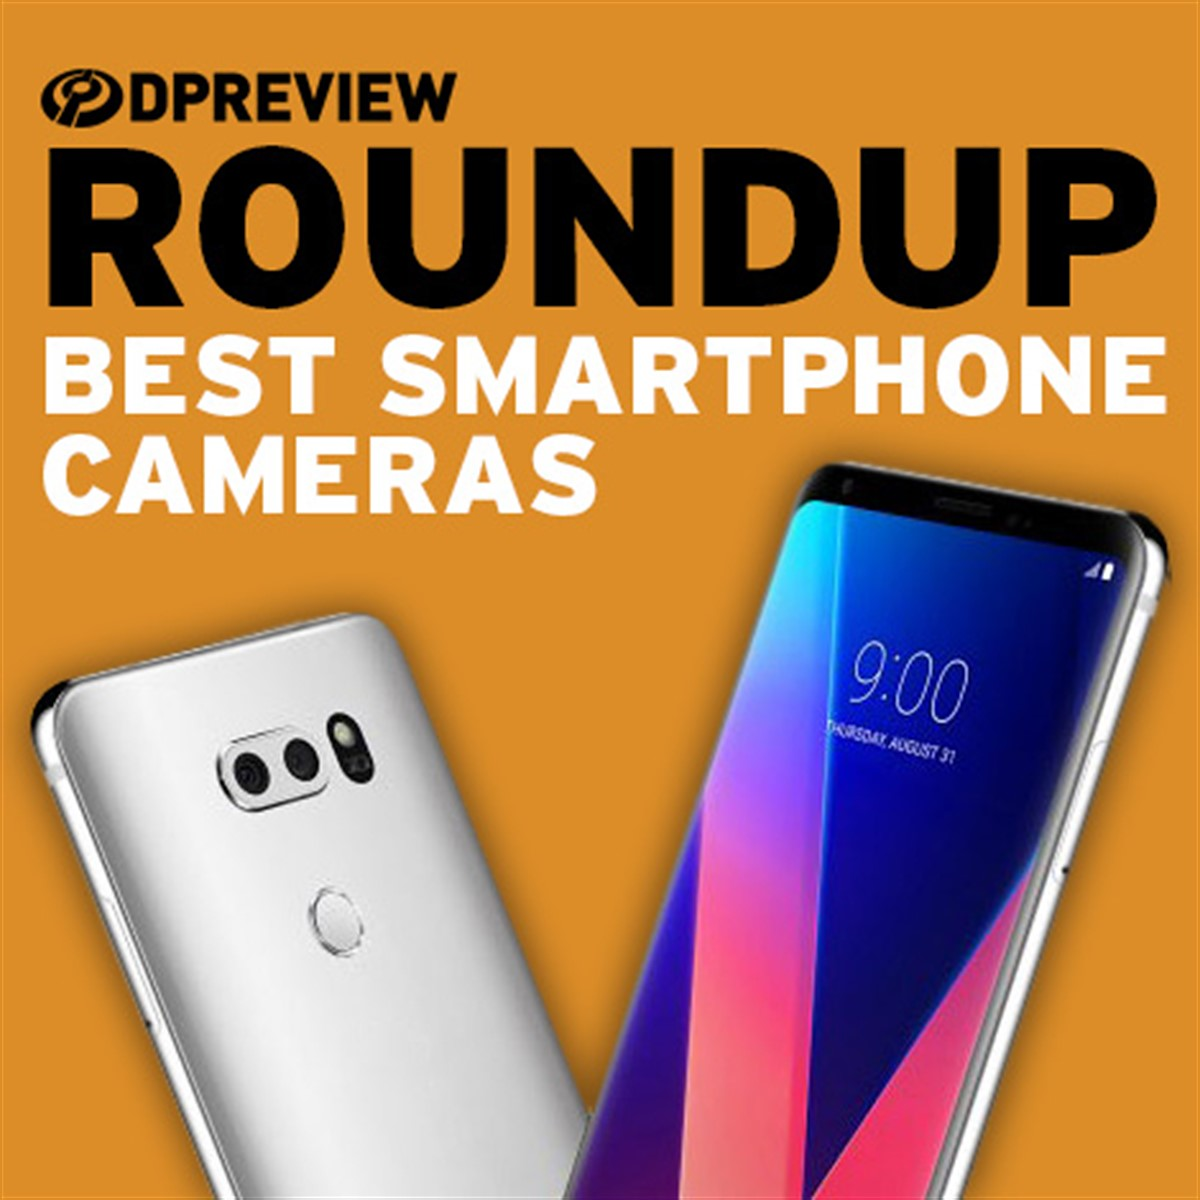 These are the best smartphone cameras you can buy: Digital